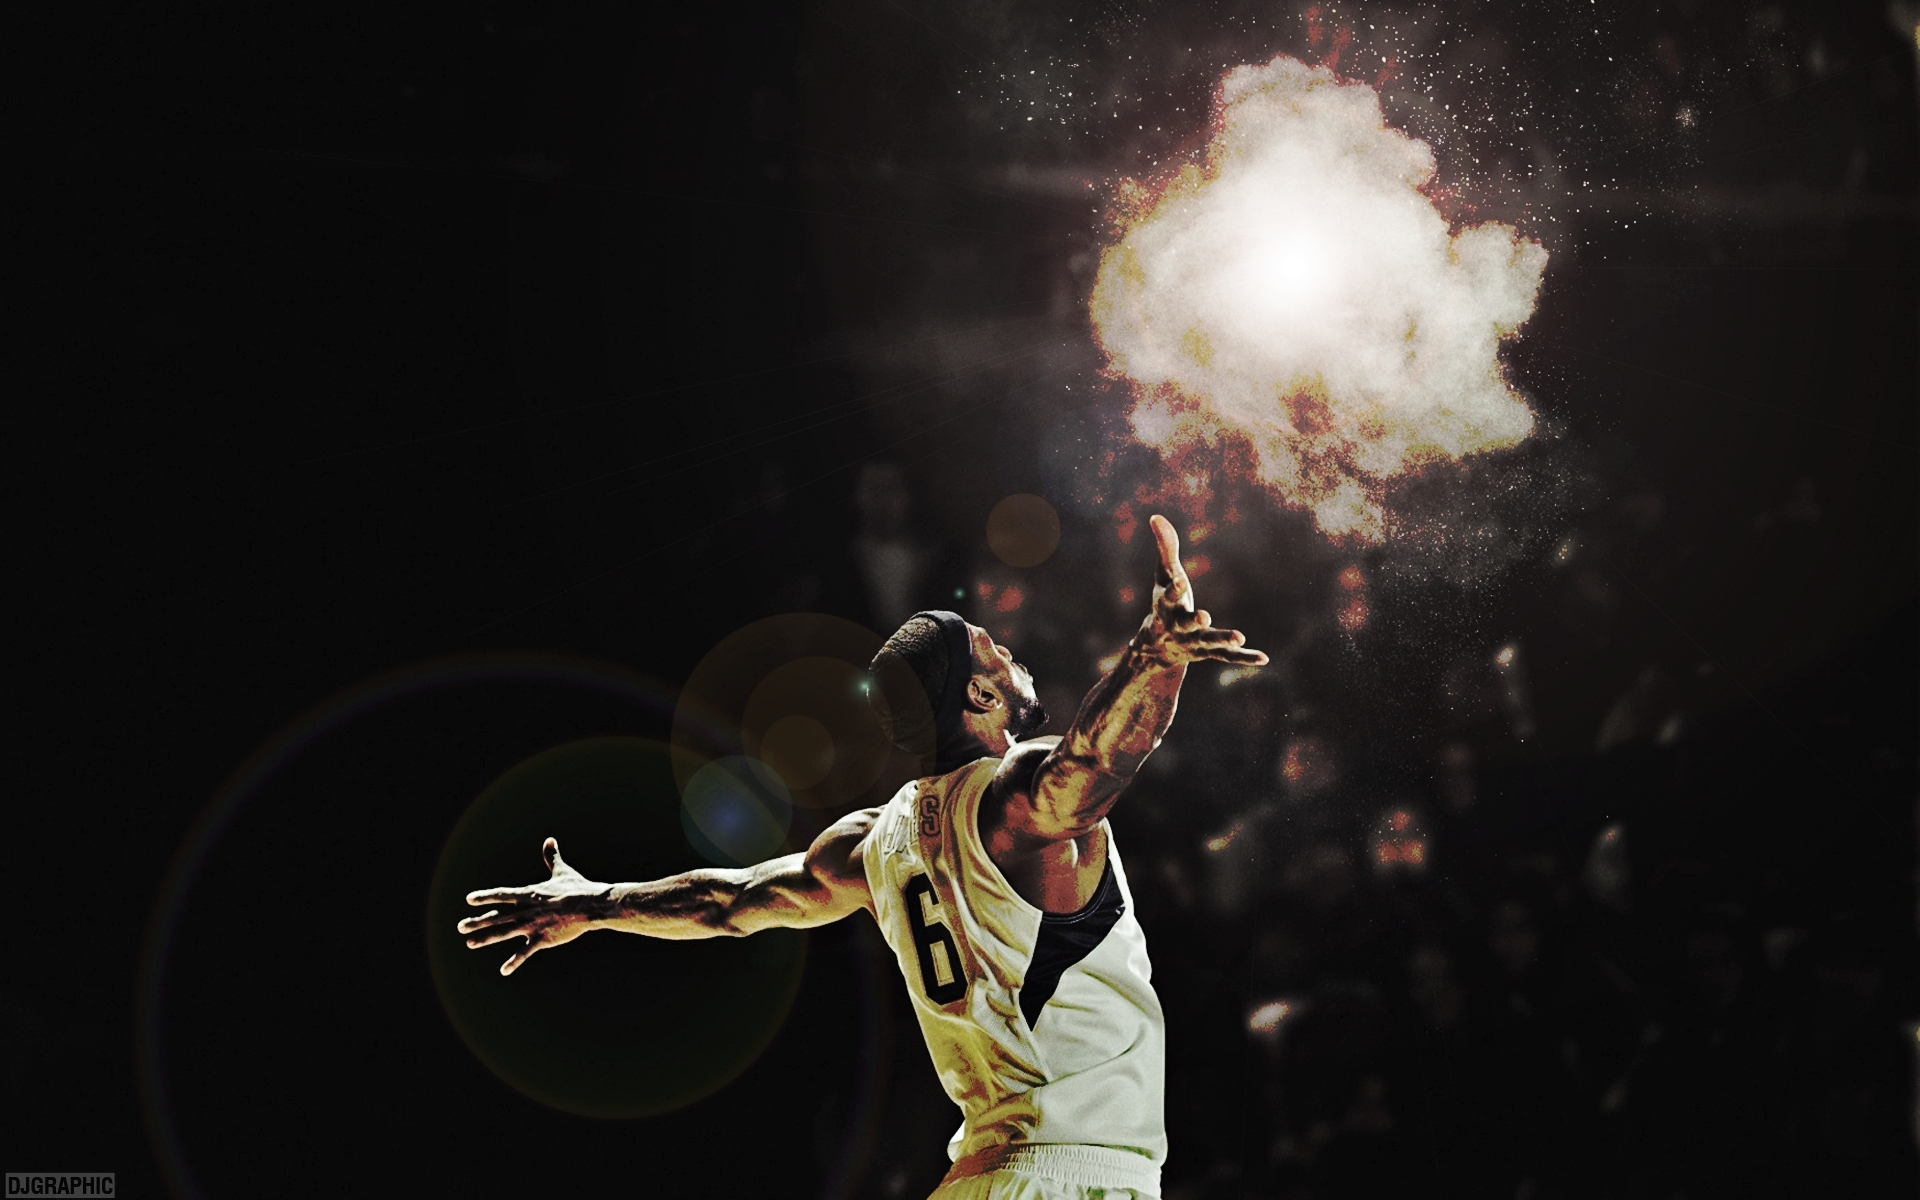 Nba Basketball Lebron James Miami Heat Wallpaper 1920x1200